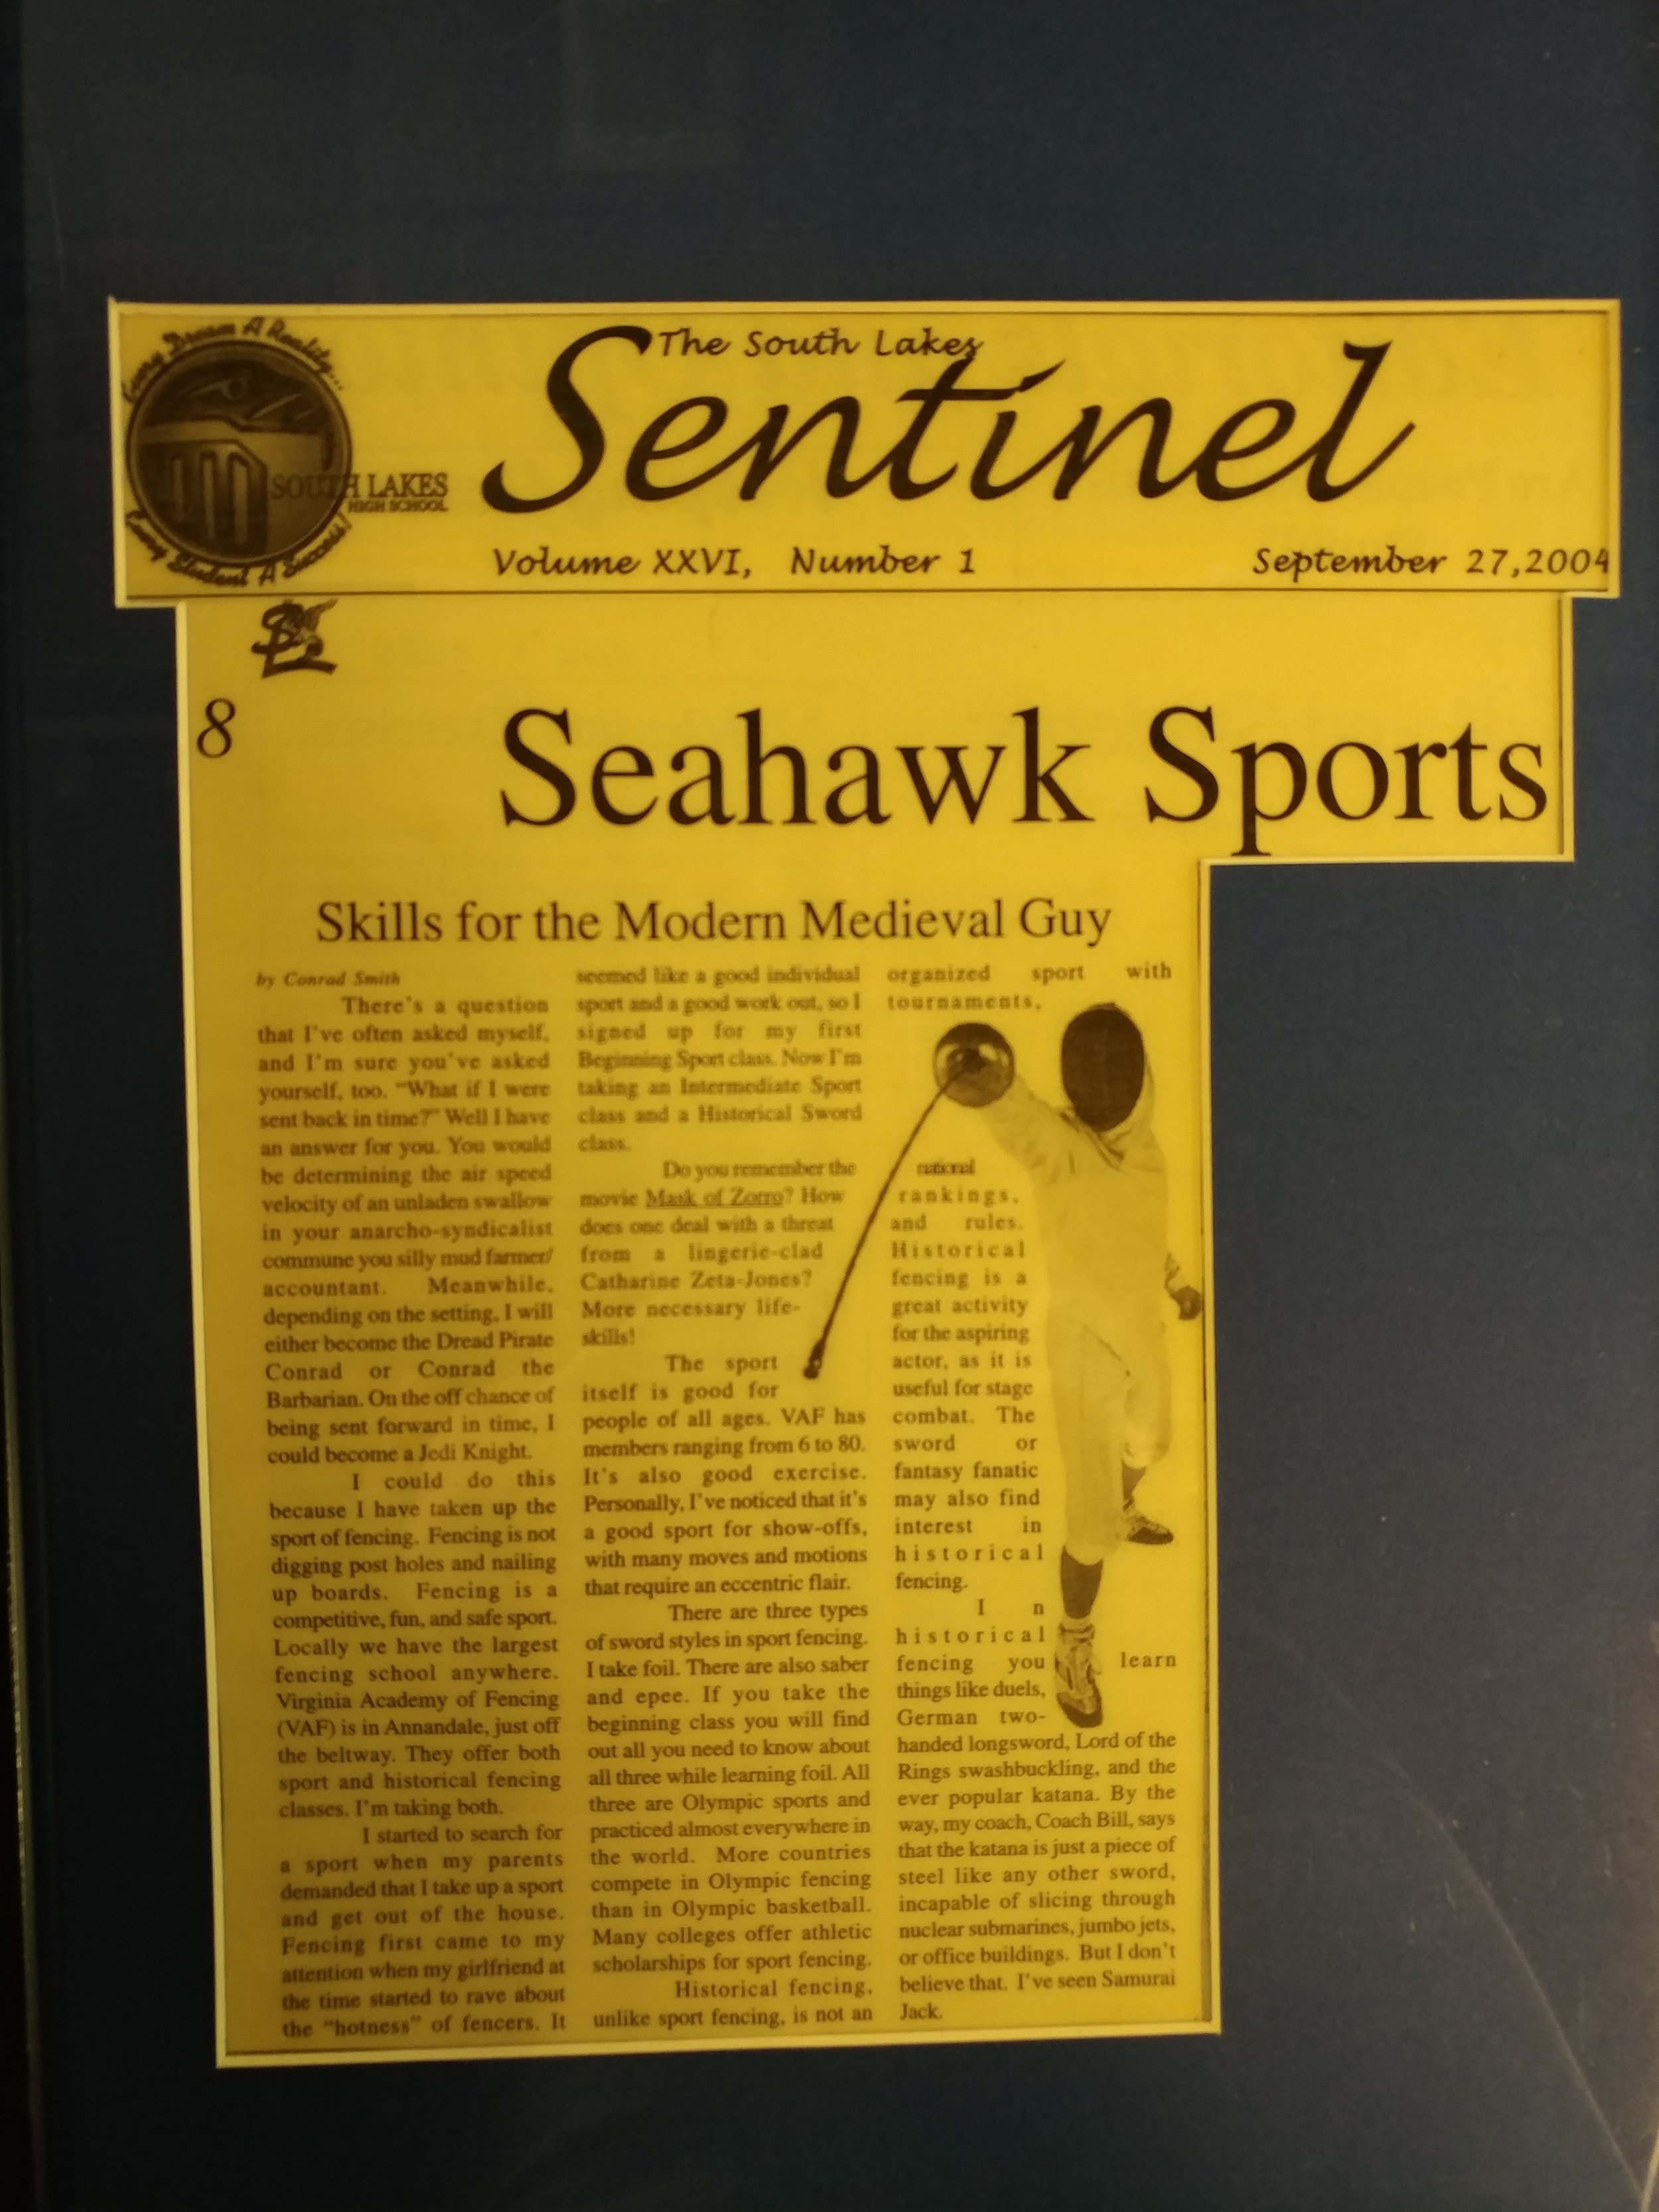 The South Lakes Sentinel